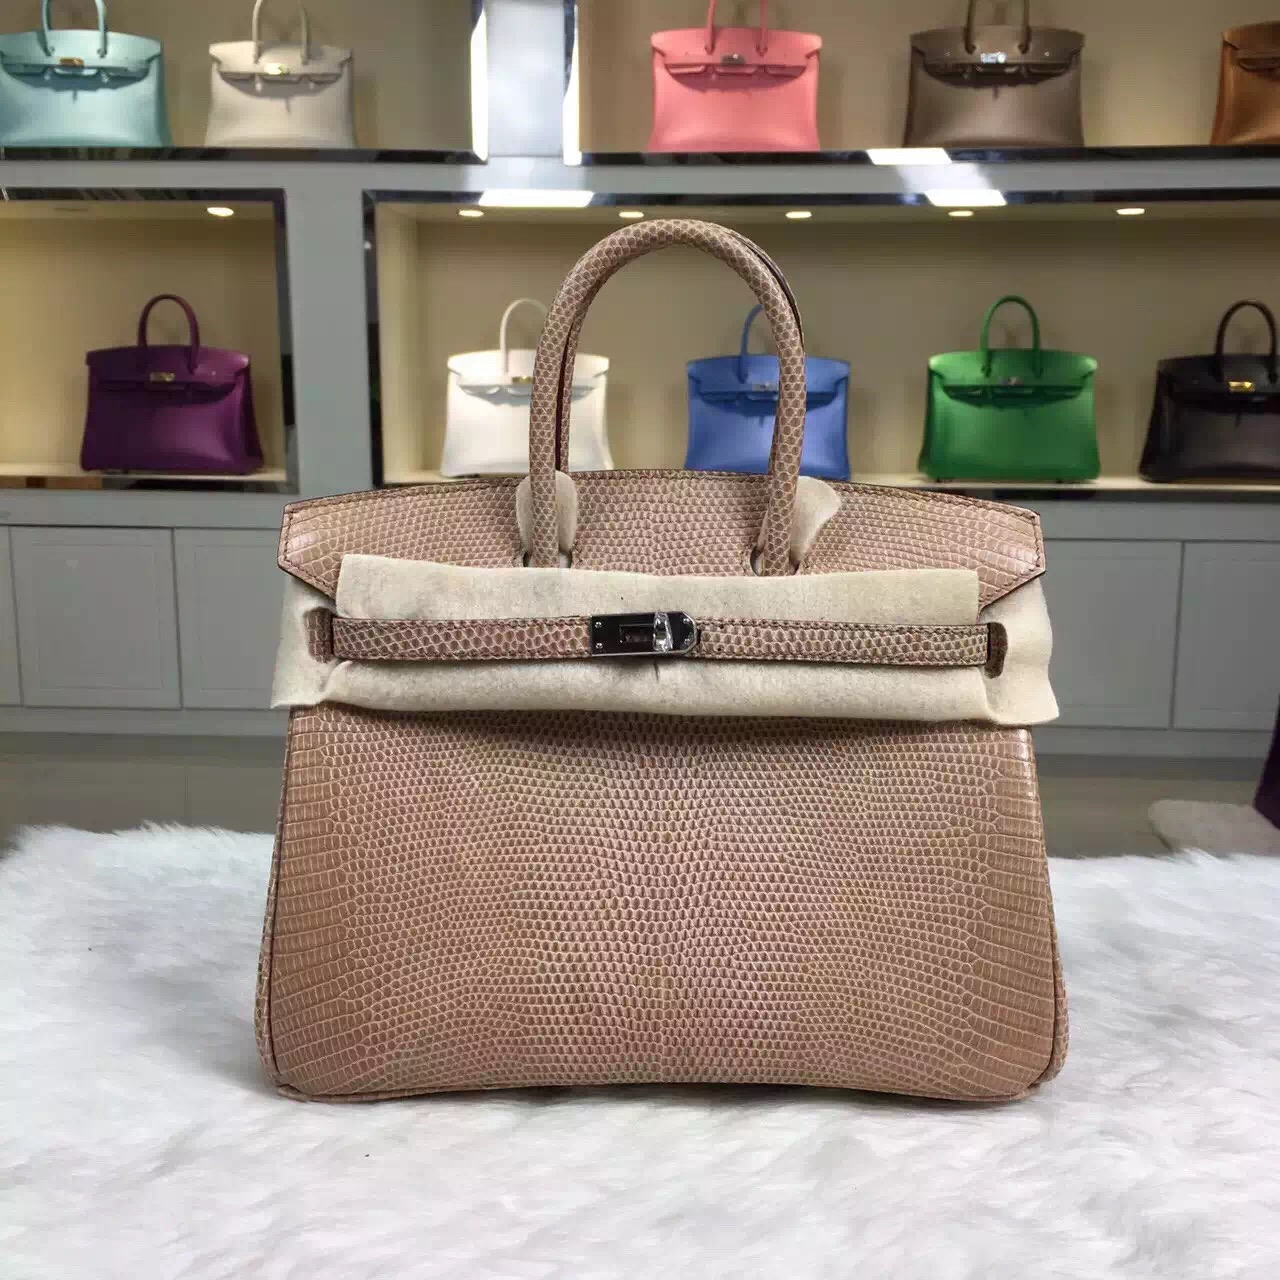 High Quality Hermes Appricot Lizard Leather Birkin Bag 25cm Silver Hardware